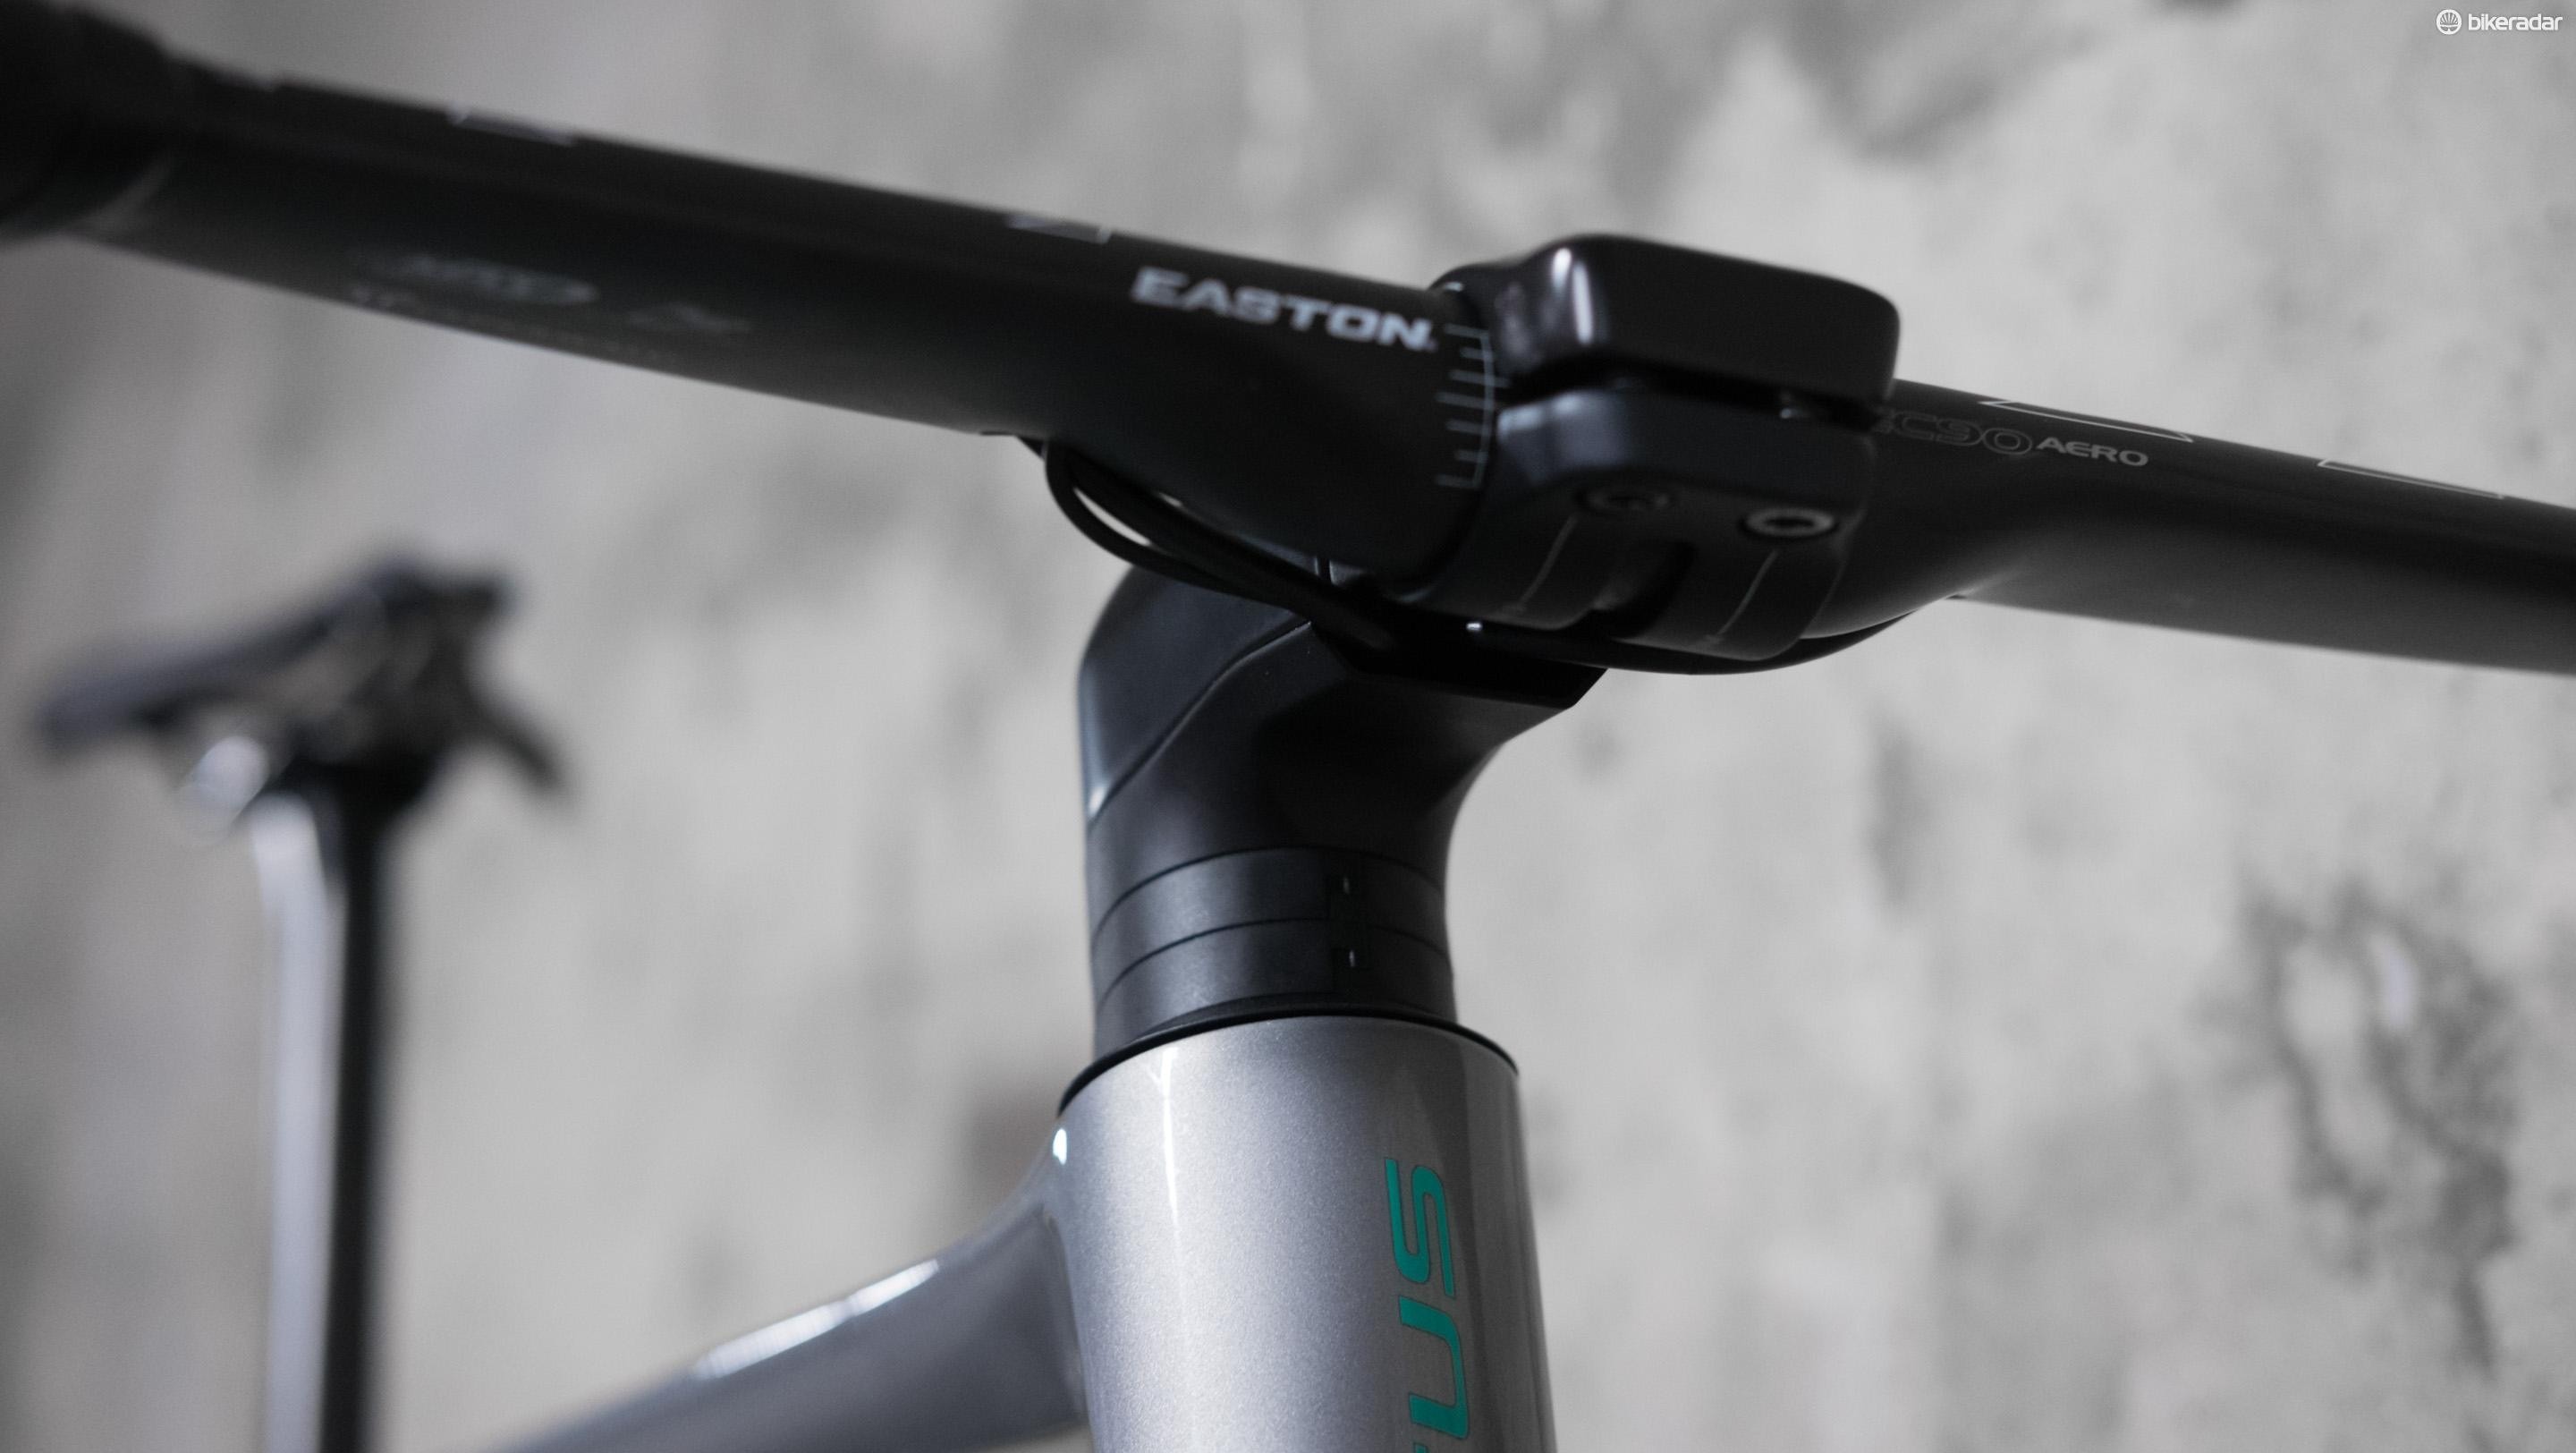 Cleverly, the stem is kept separate from the internal cable routing, which should make packing the bike for travel a cinch